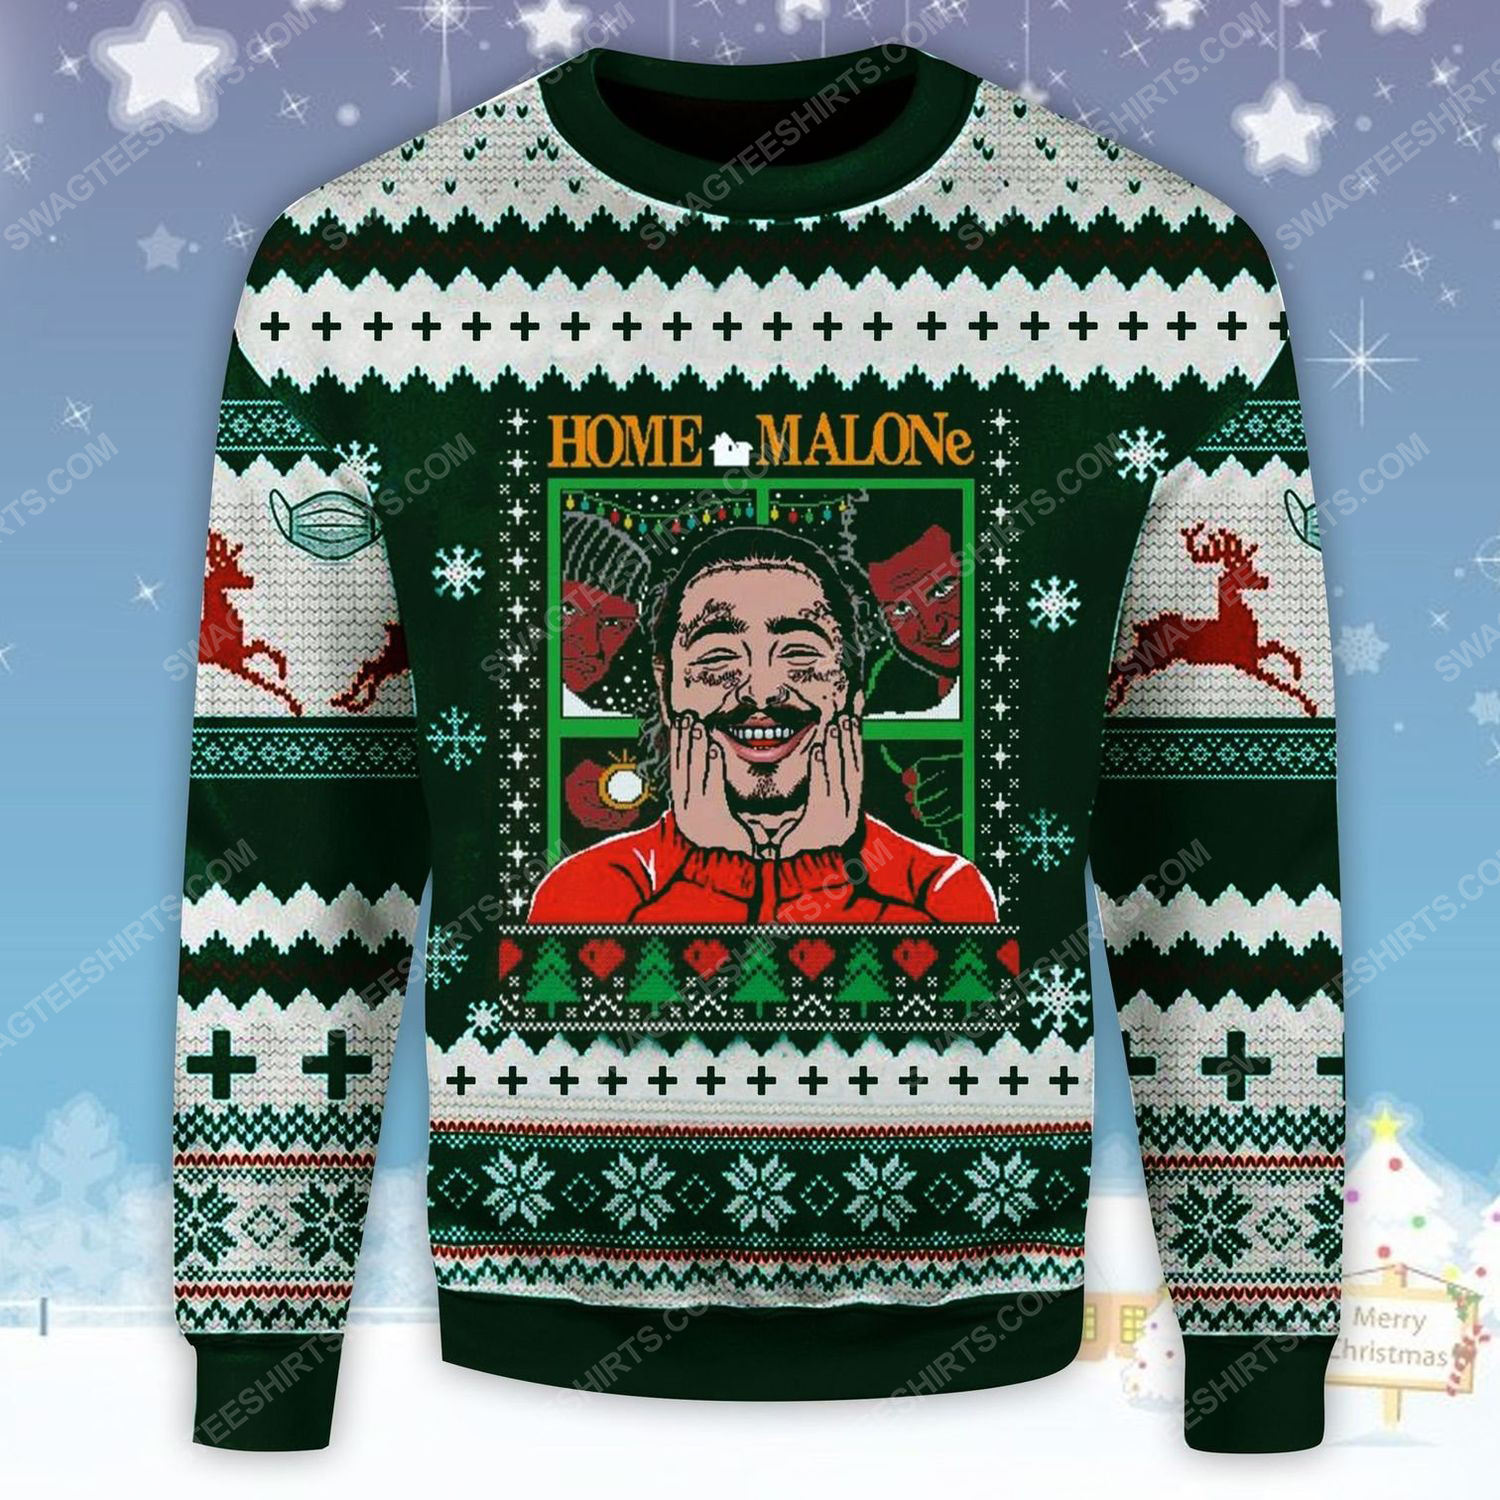 Home alone post malone ugly christmas sweater - Copy (2)